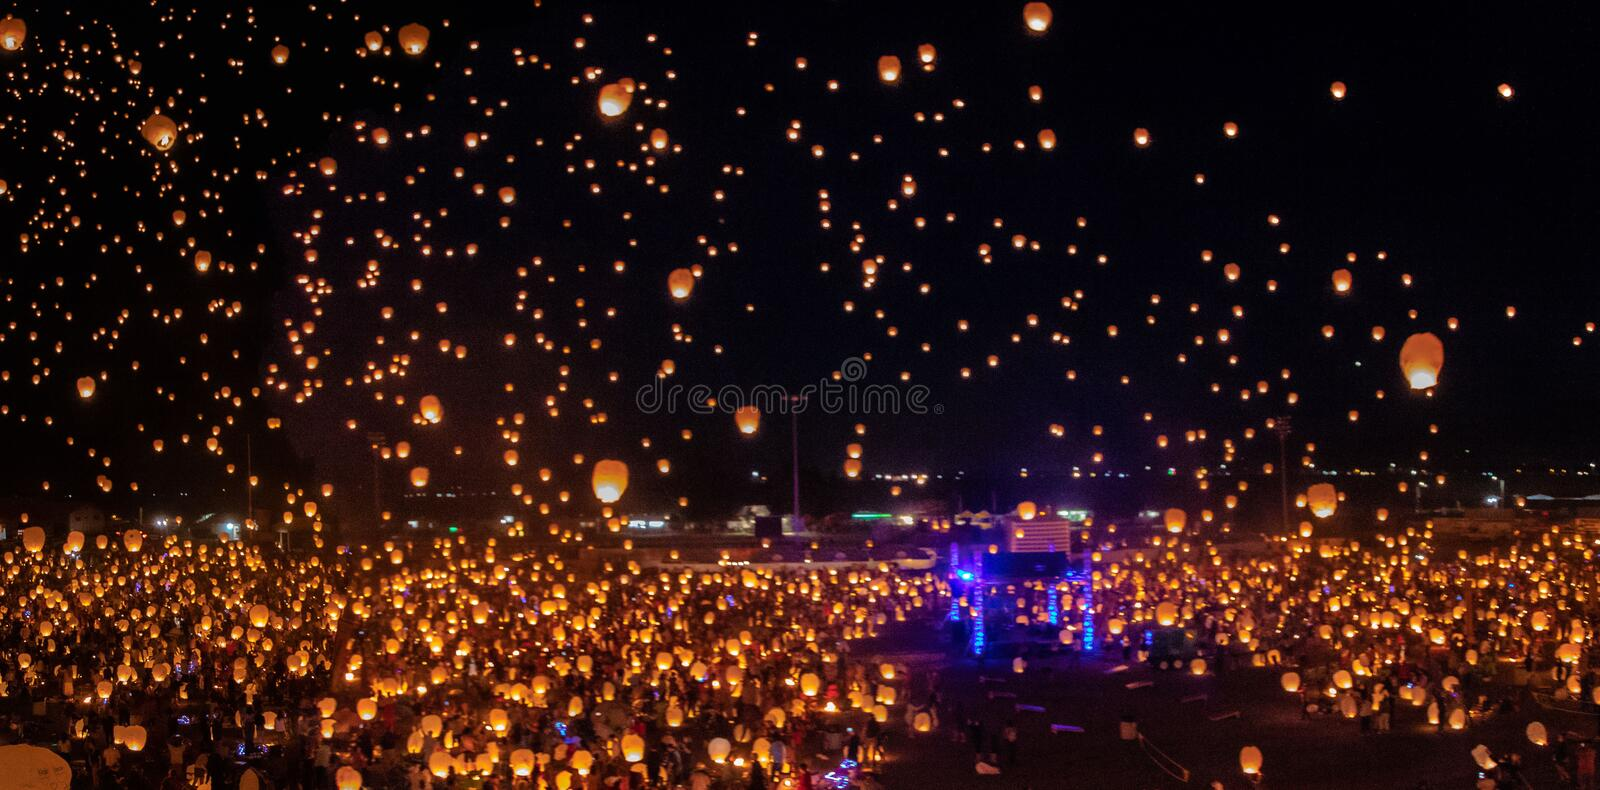 Seeing thousands of lantern floating to the heavens was beautiful. The lantern festival in Post Falls Idaho has thousands of people releasing their personalized stock images